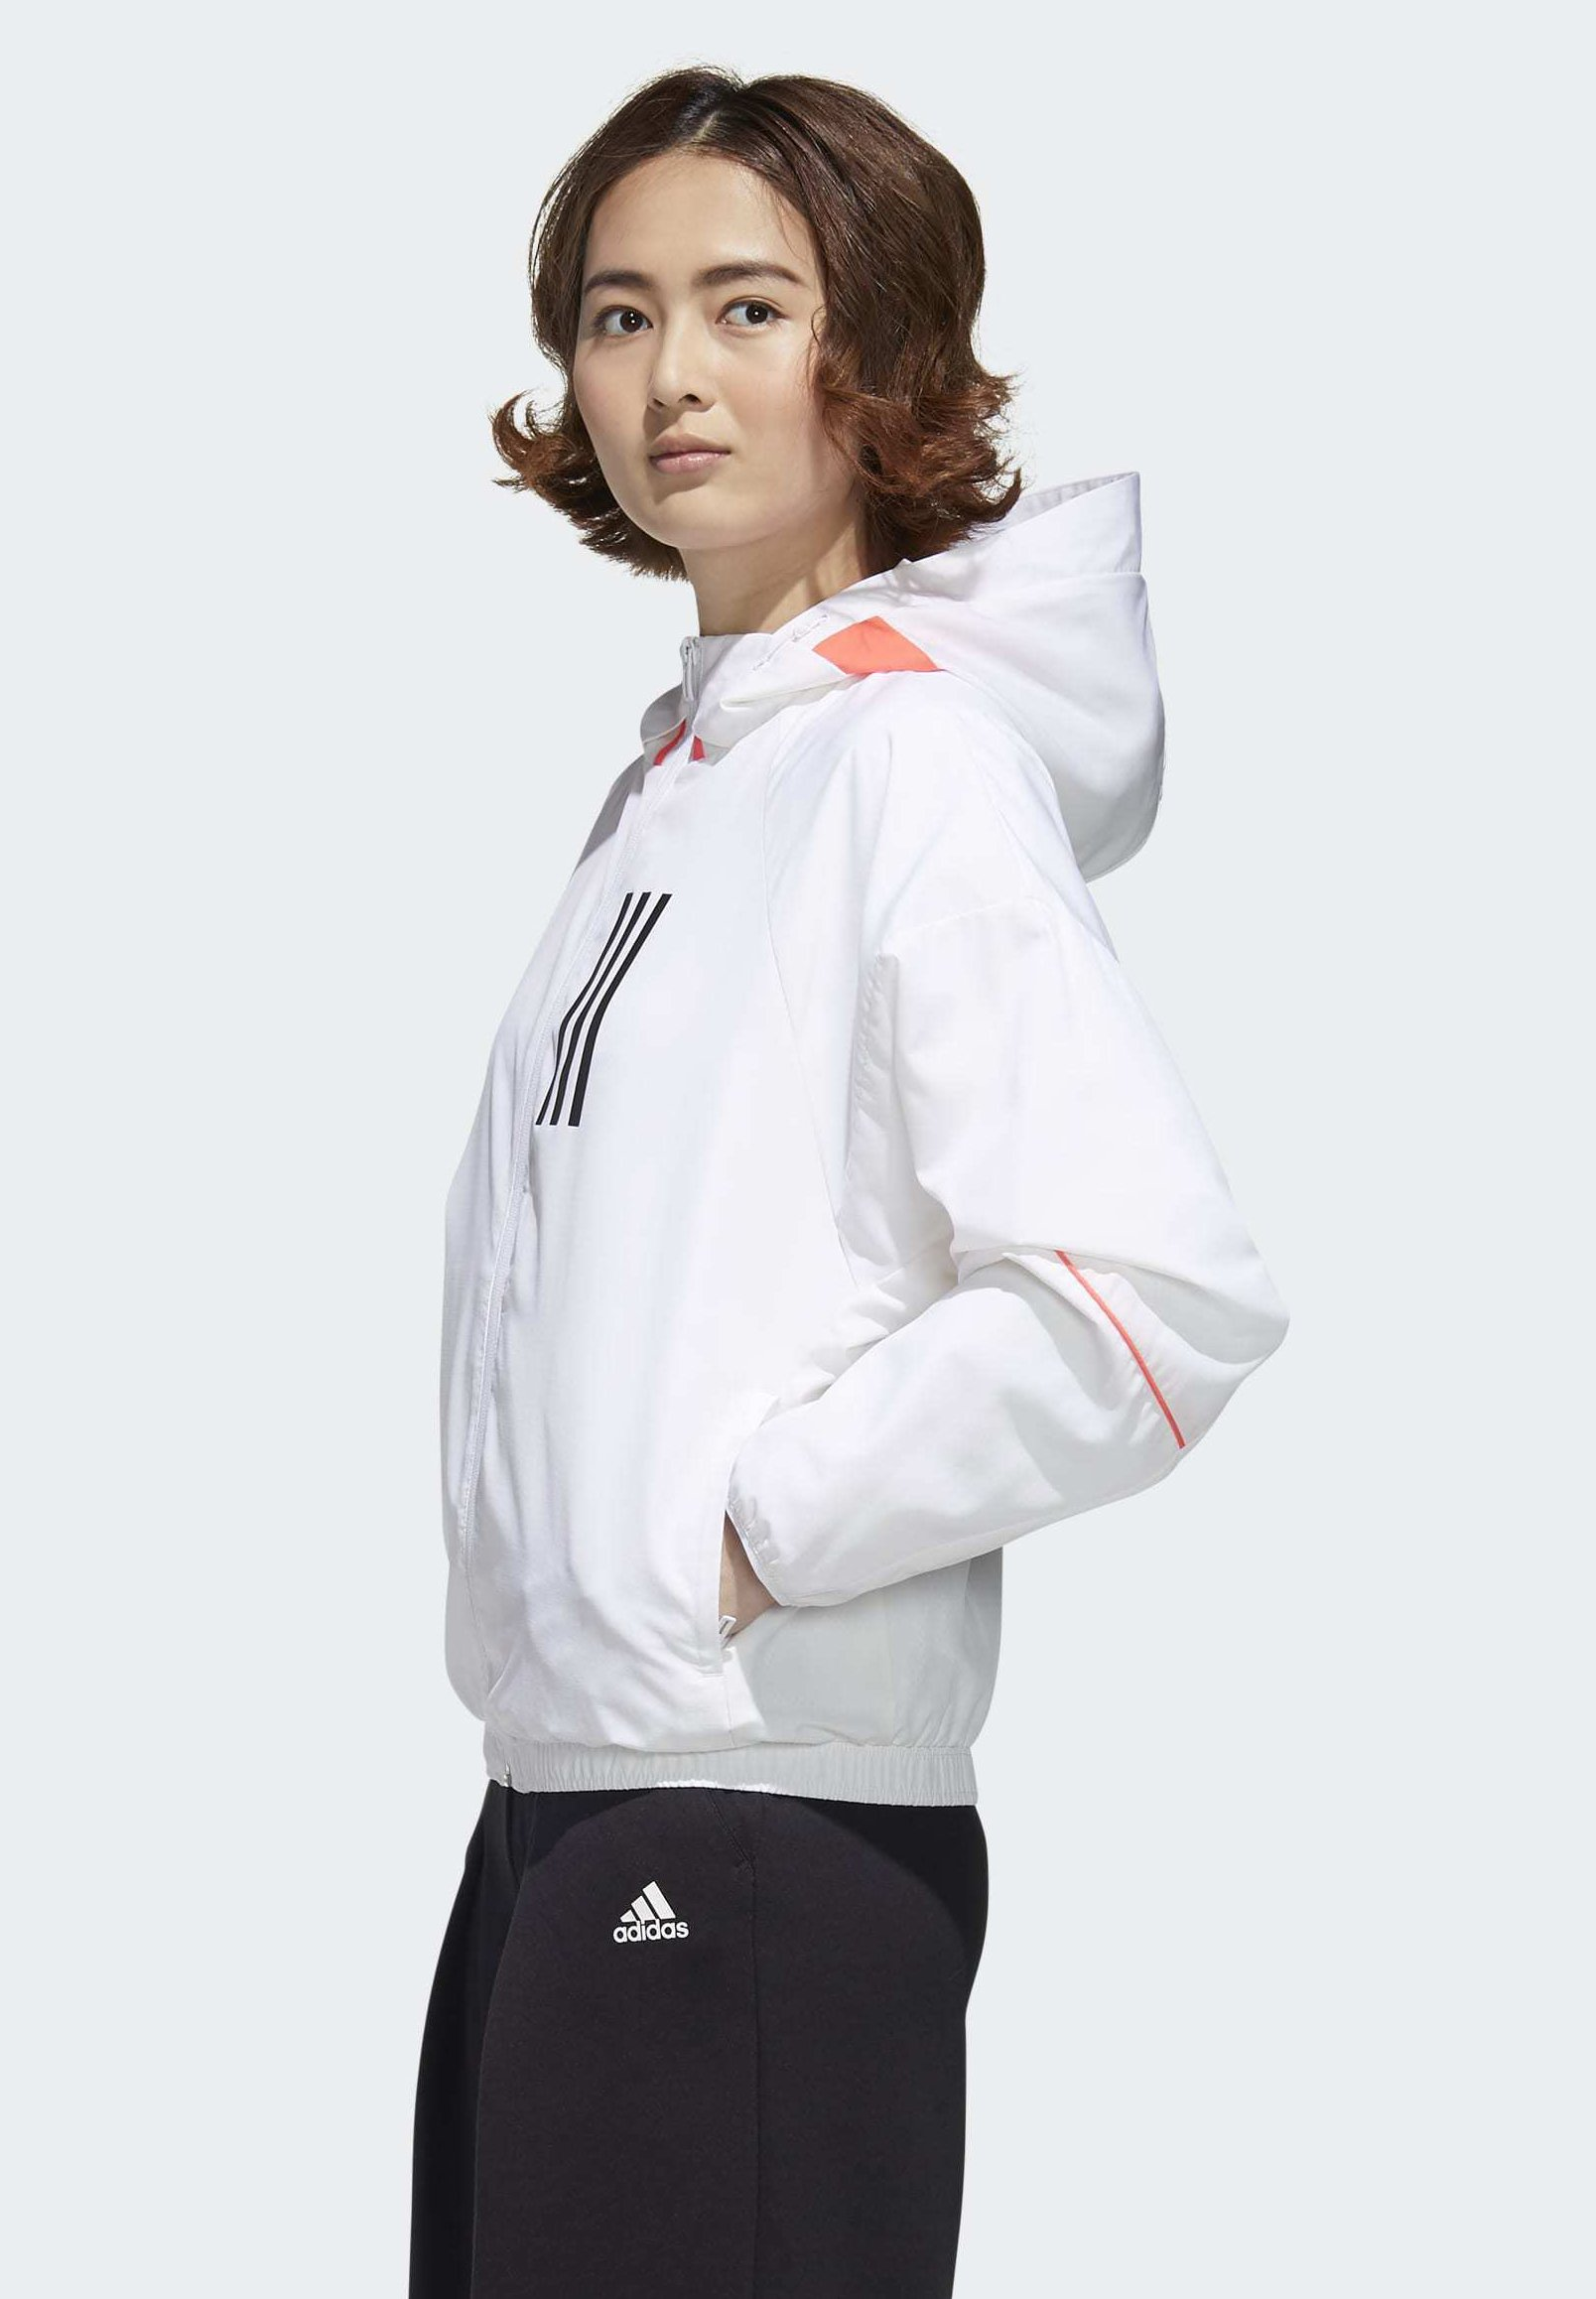 adidas Performance Soft shell jacket - white/black o2xpb